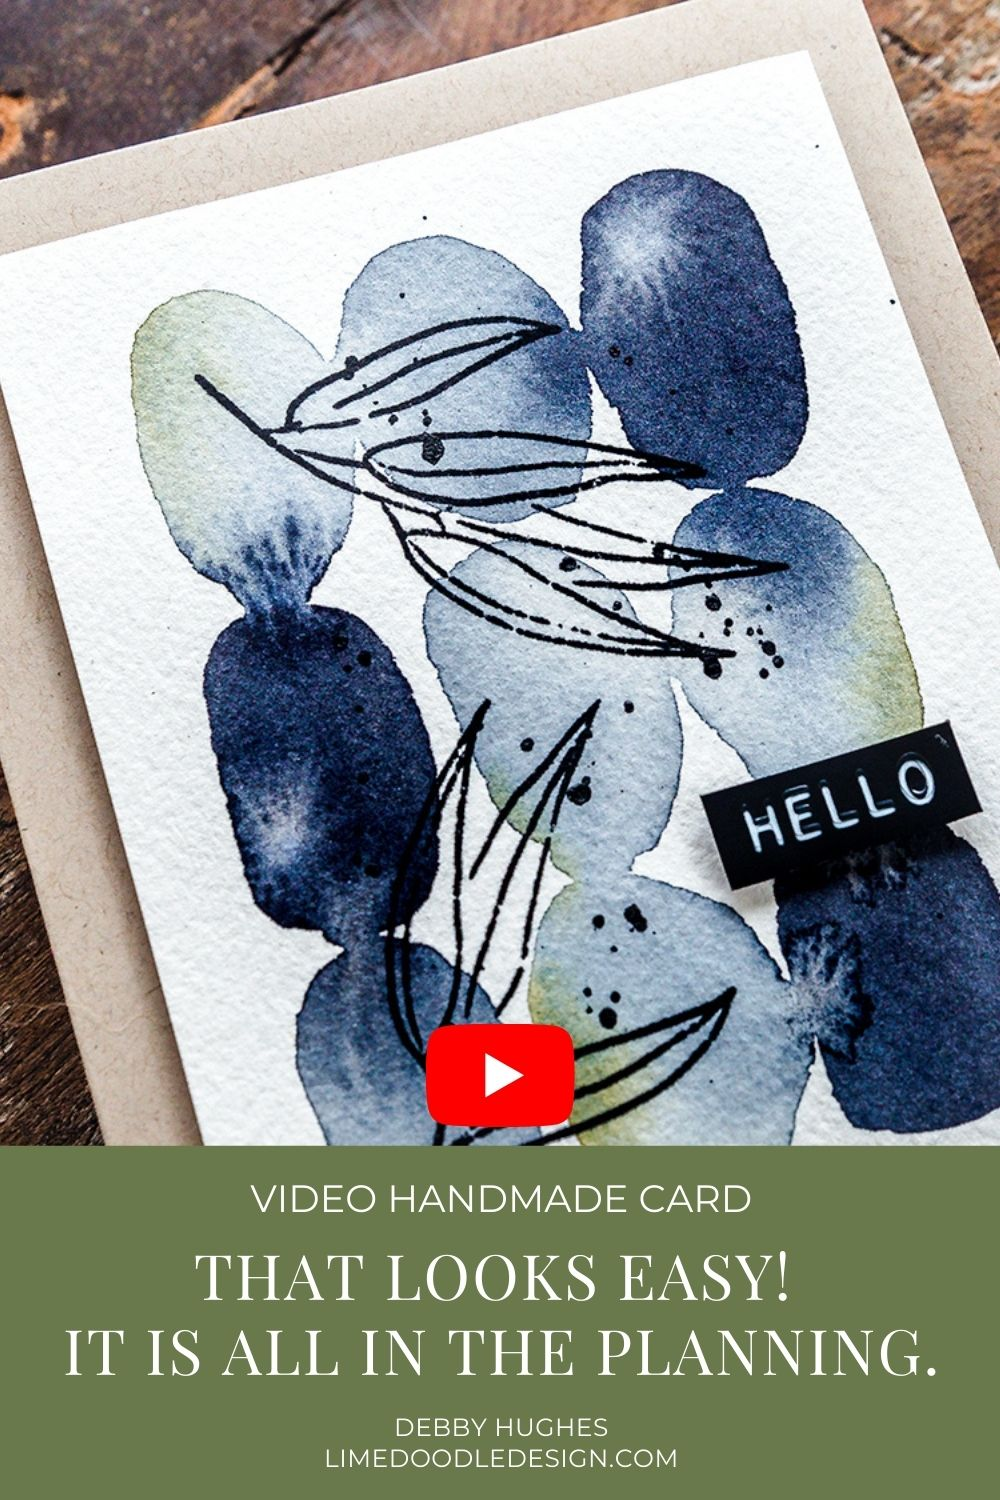 Video tutorial -  That looks so easy! The planning that goes in to an 'easy' project. Handmade card by Debby Hughes using supplies from Simon Says Stamp. #handmadecards #cardmaking #cardmakingideas #cardmakingtechniques  #cardmakingtutorials #handmadecardideas #simonsaysstamp